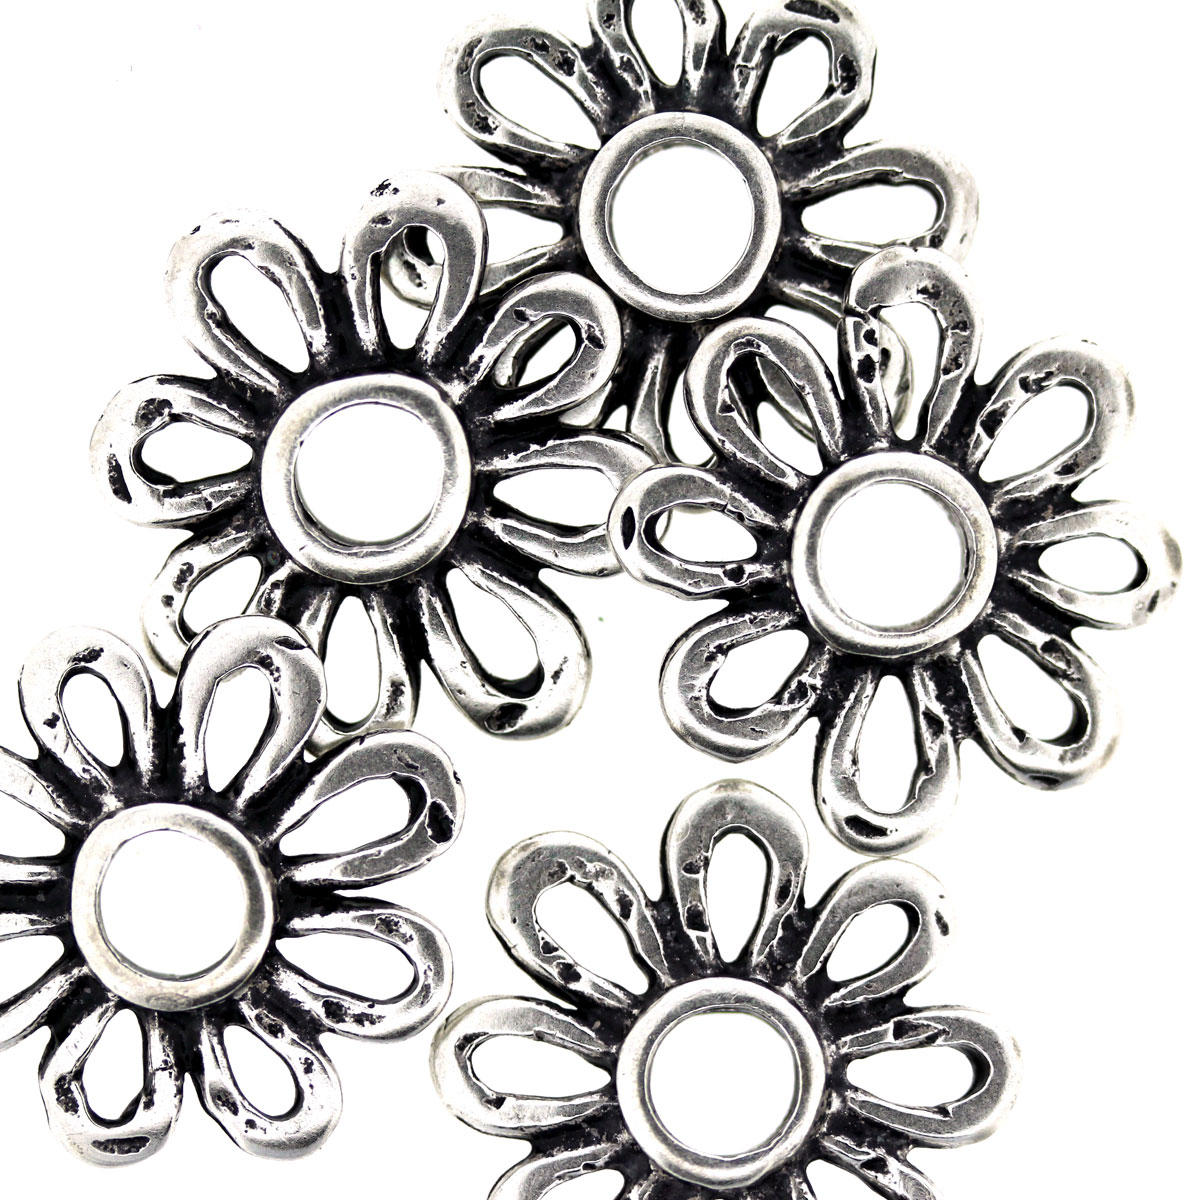 Antique Silver Margarita Daisy Charm Bead